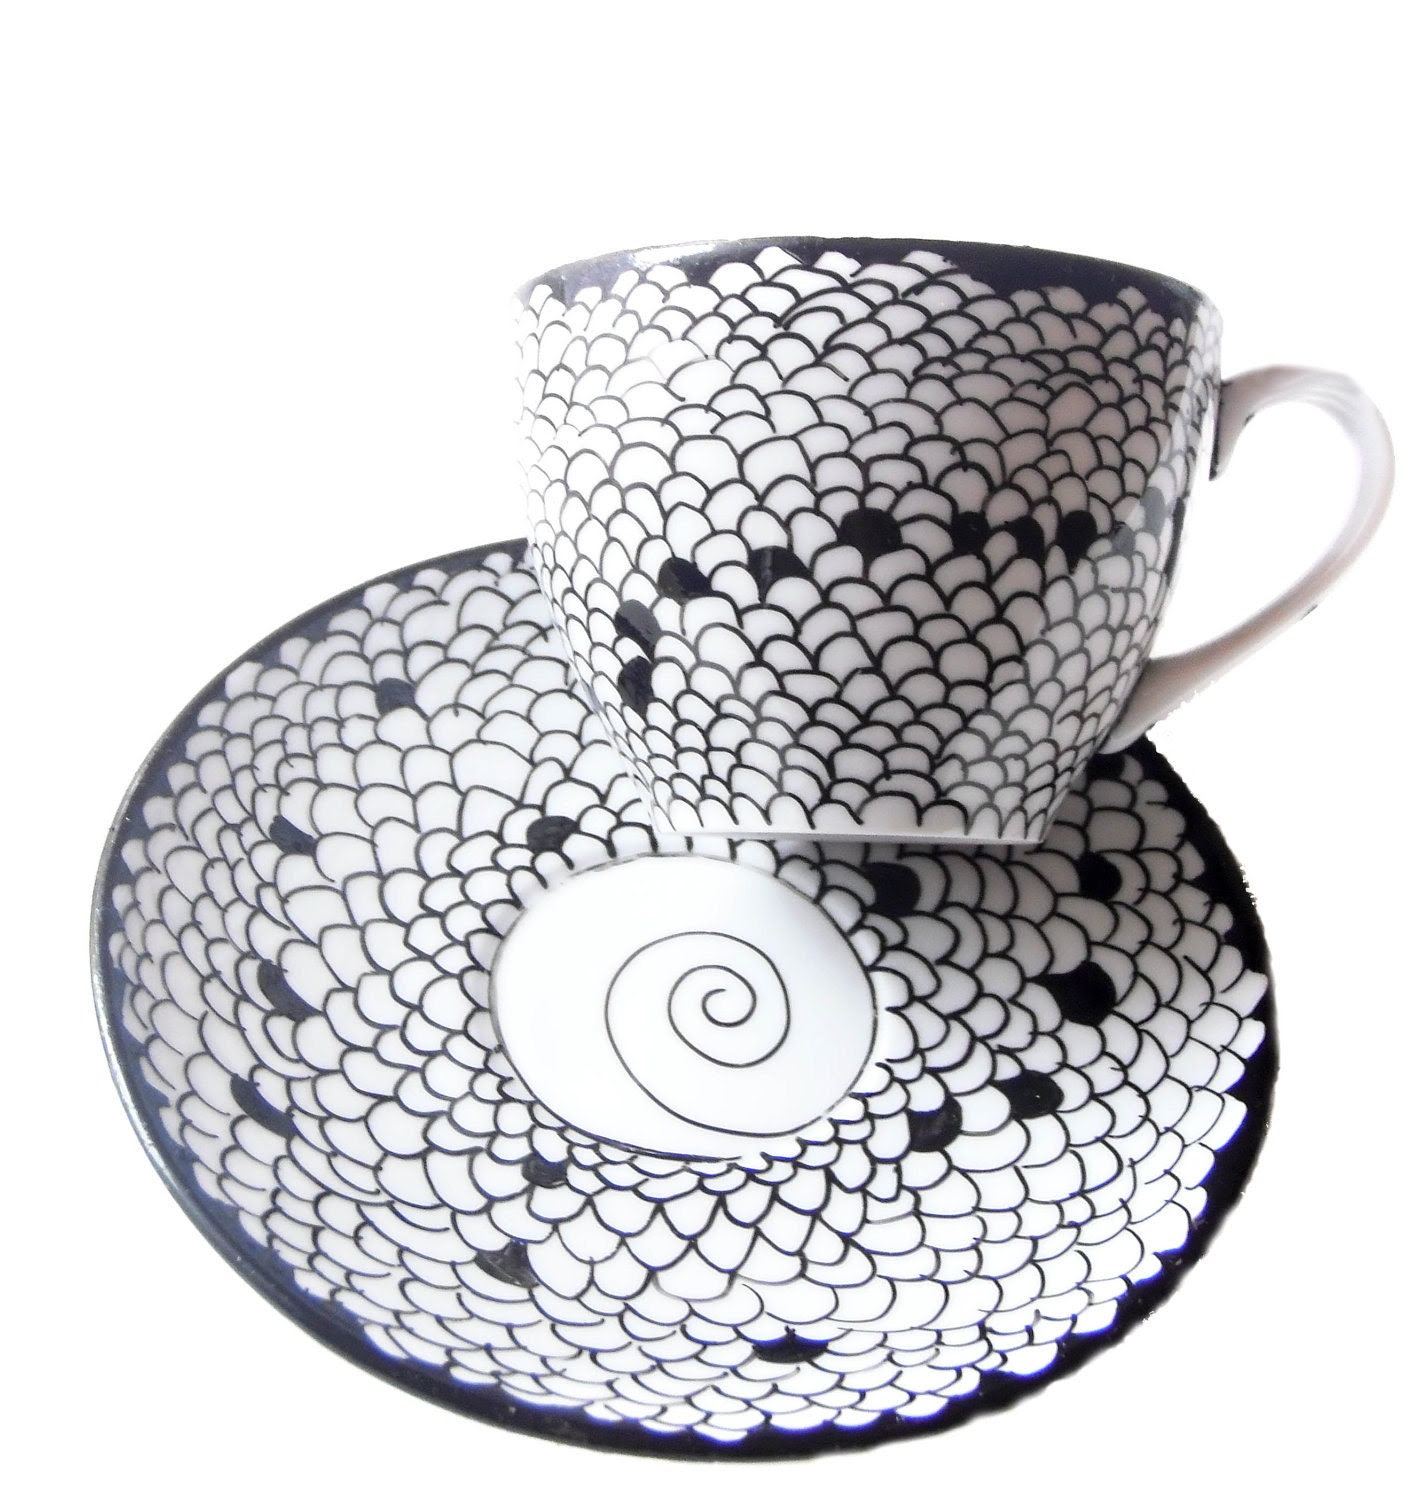 CLEARANCE Teacup Hand painted teacup - Honeycomb - WAS 26 USD